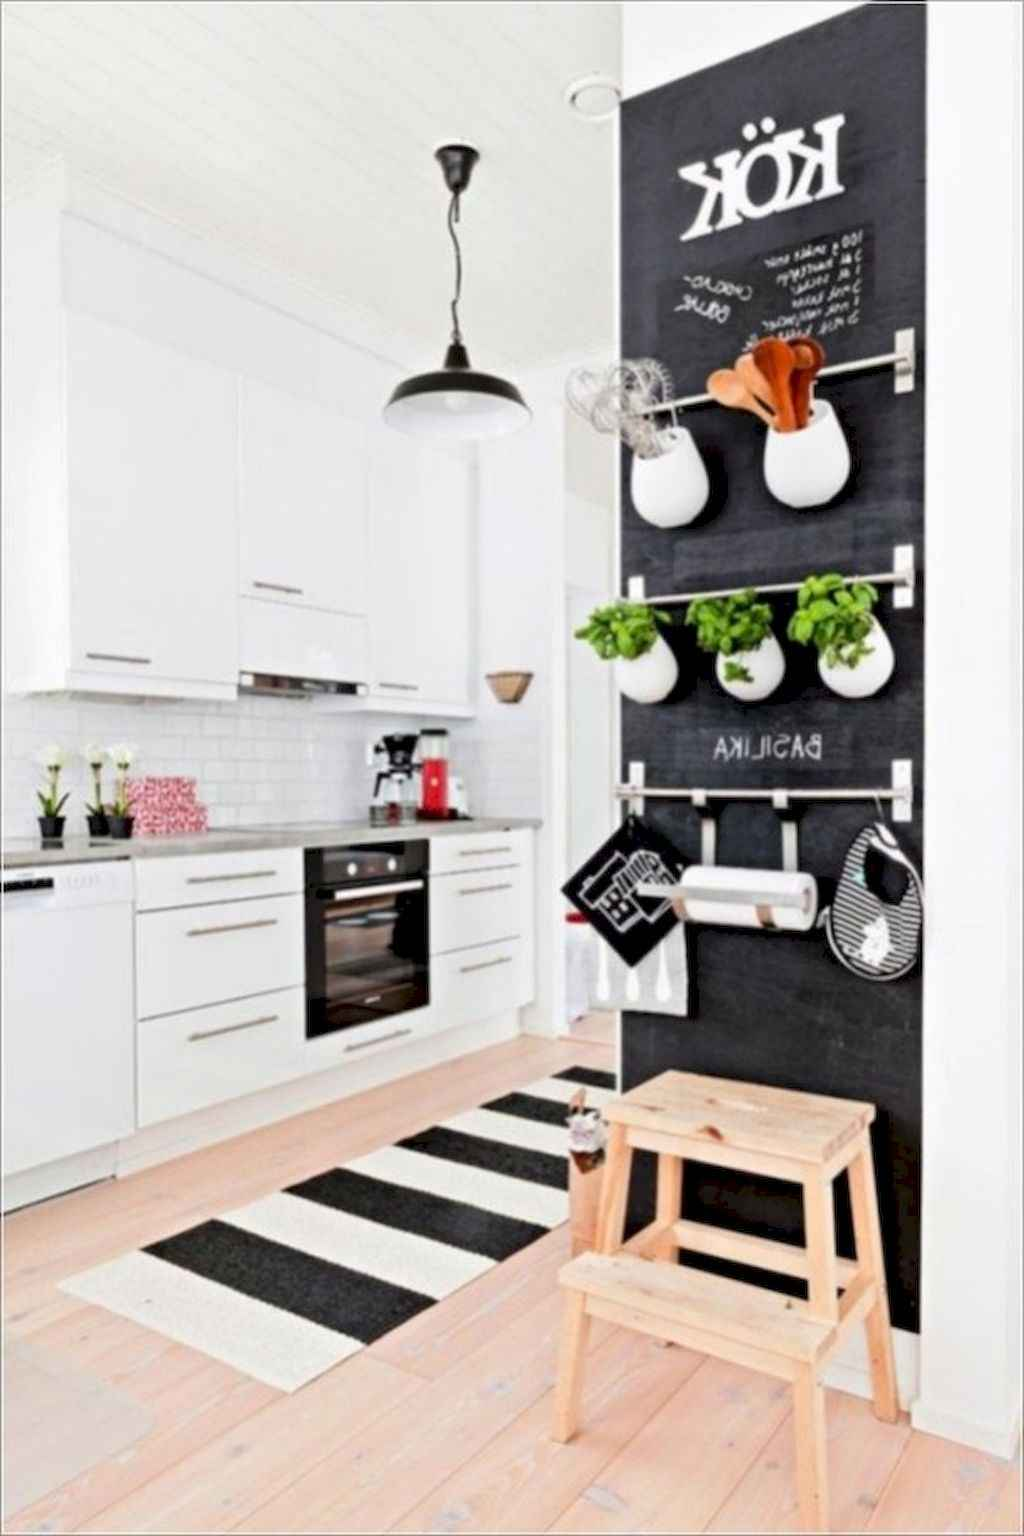 Innovative Kitchen Chalkboard Wall Ideas - plusarquitectura.info